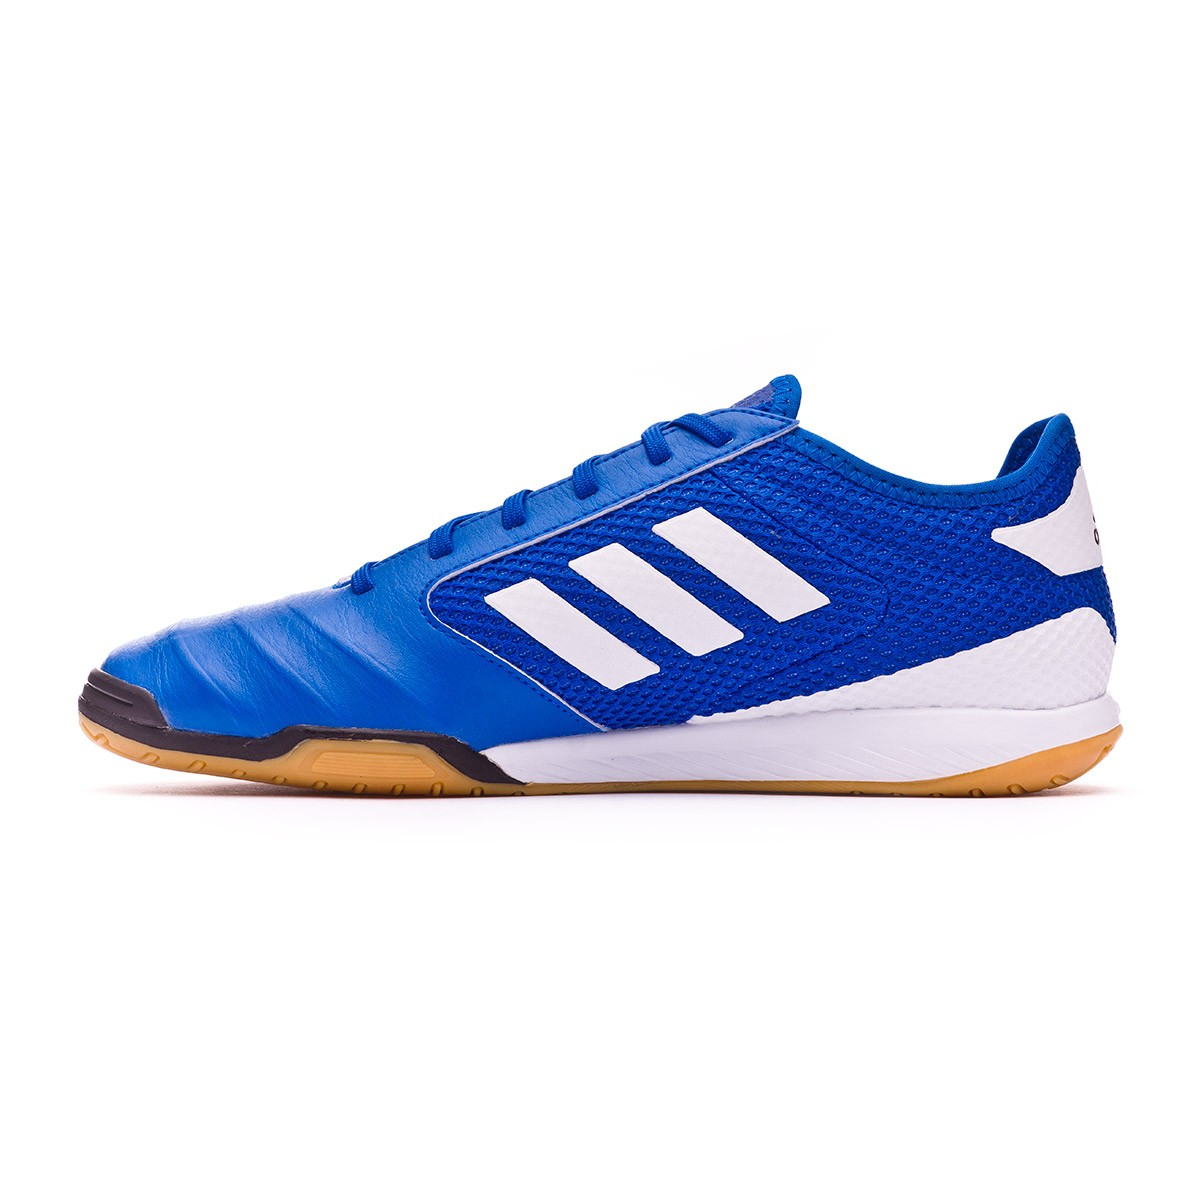 716d103848d702 Futsal Boot adidas Copa Tango 18.3 TopSala Football blue-White - Football  store Fútbol Emotion